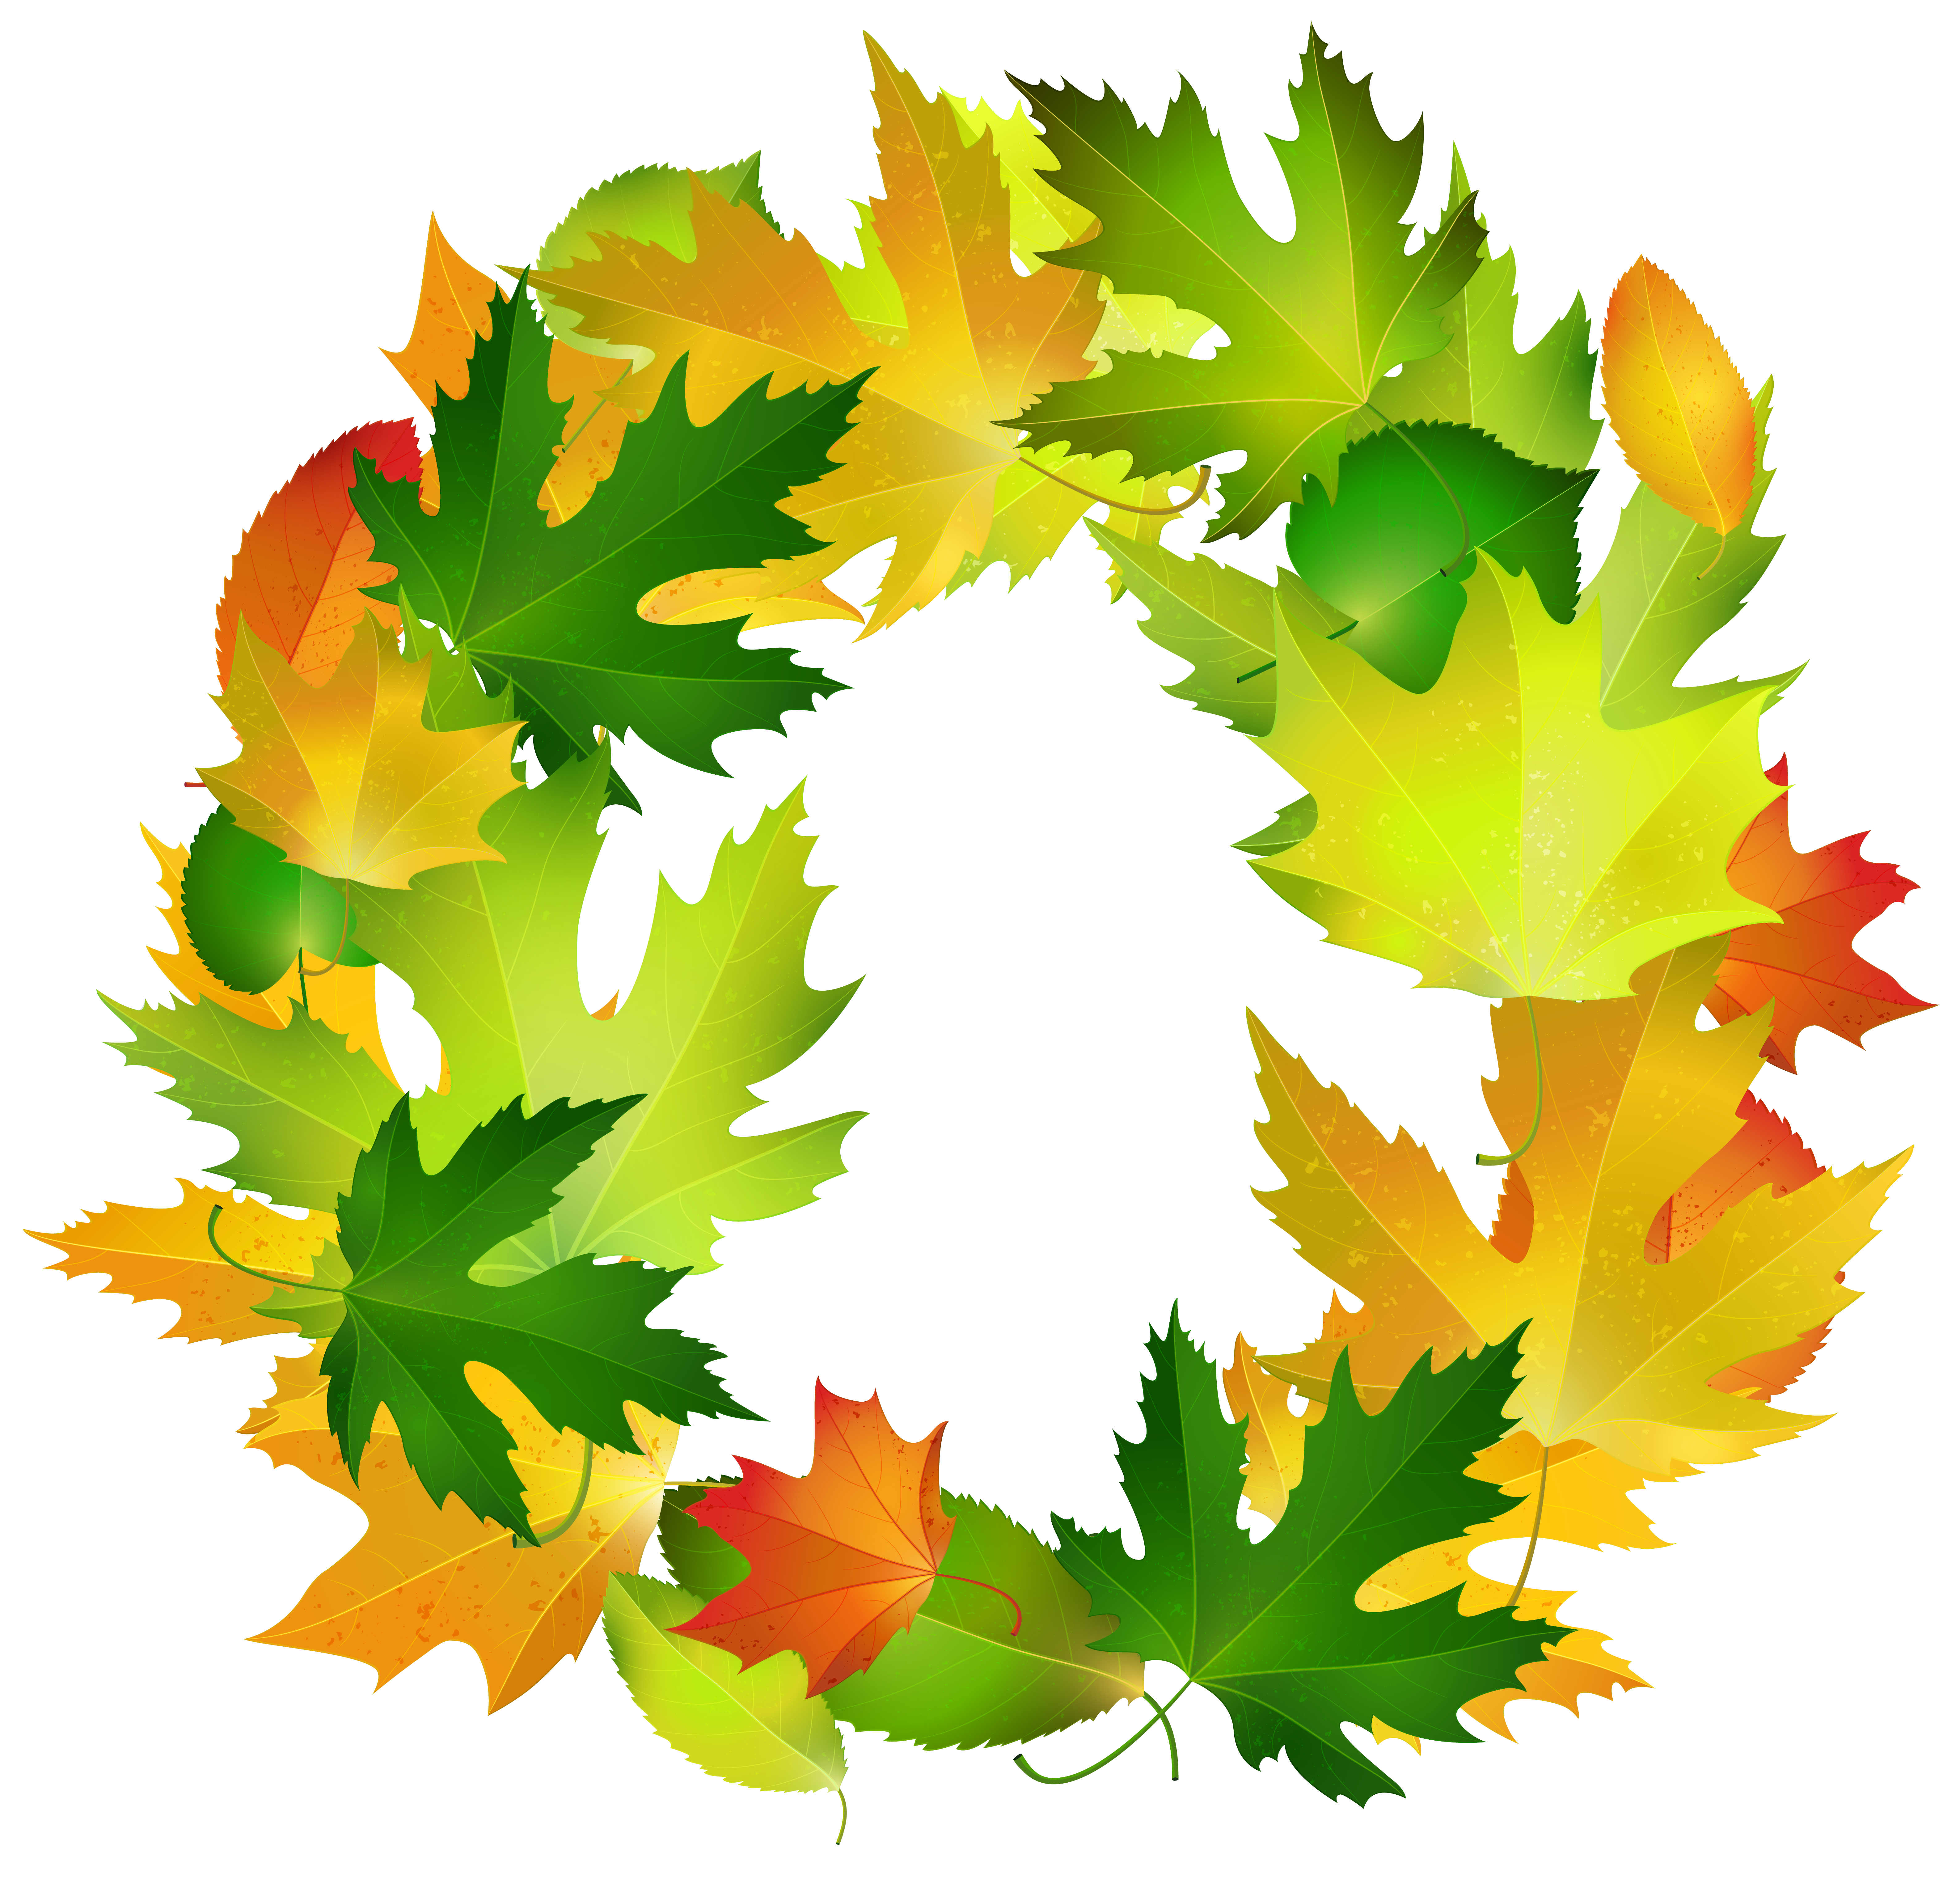 Fall leaves border labels png. Oval frame clipart image